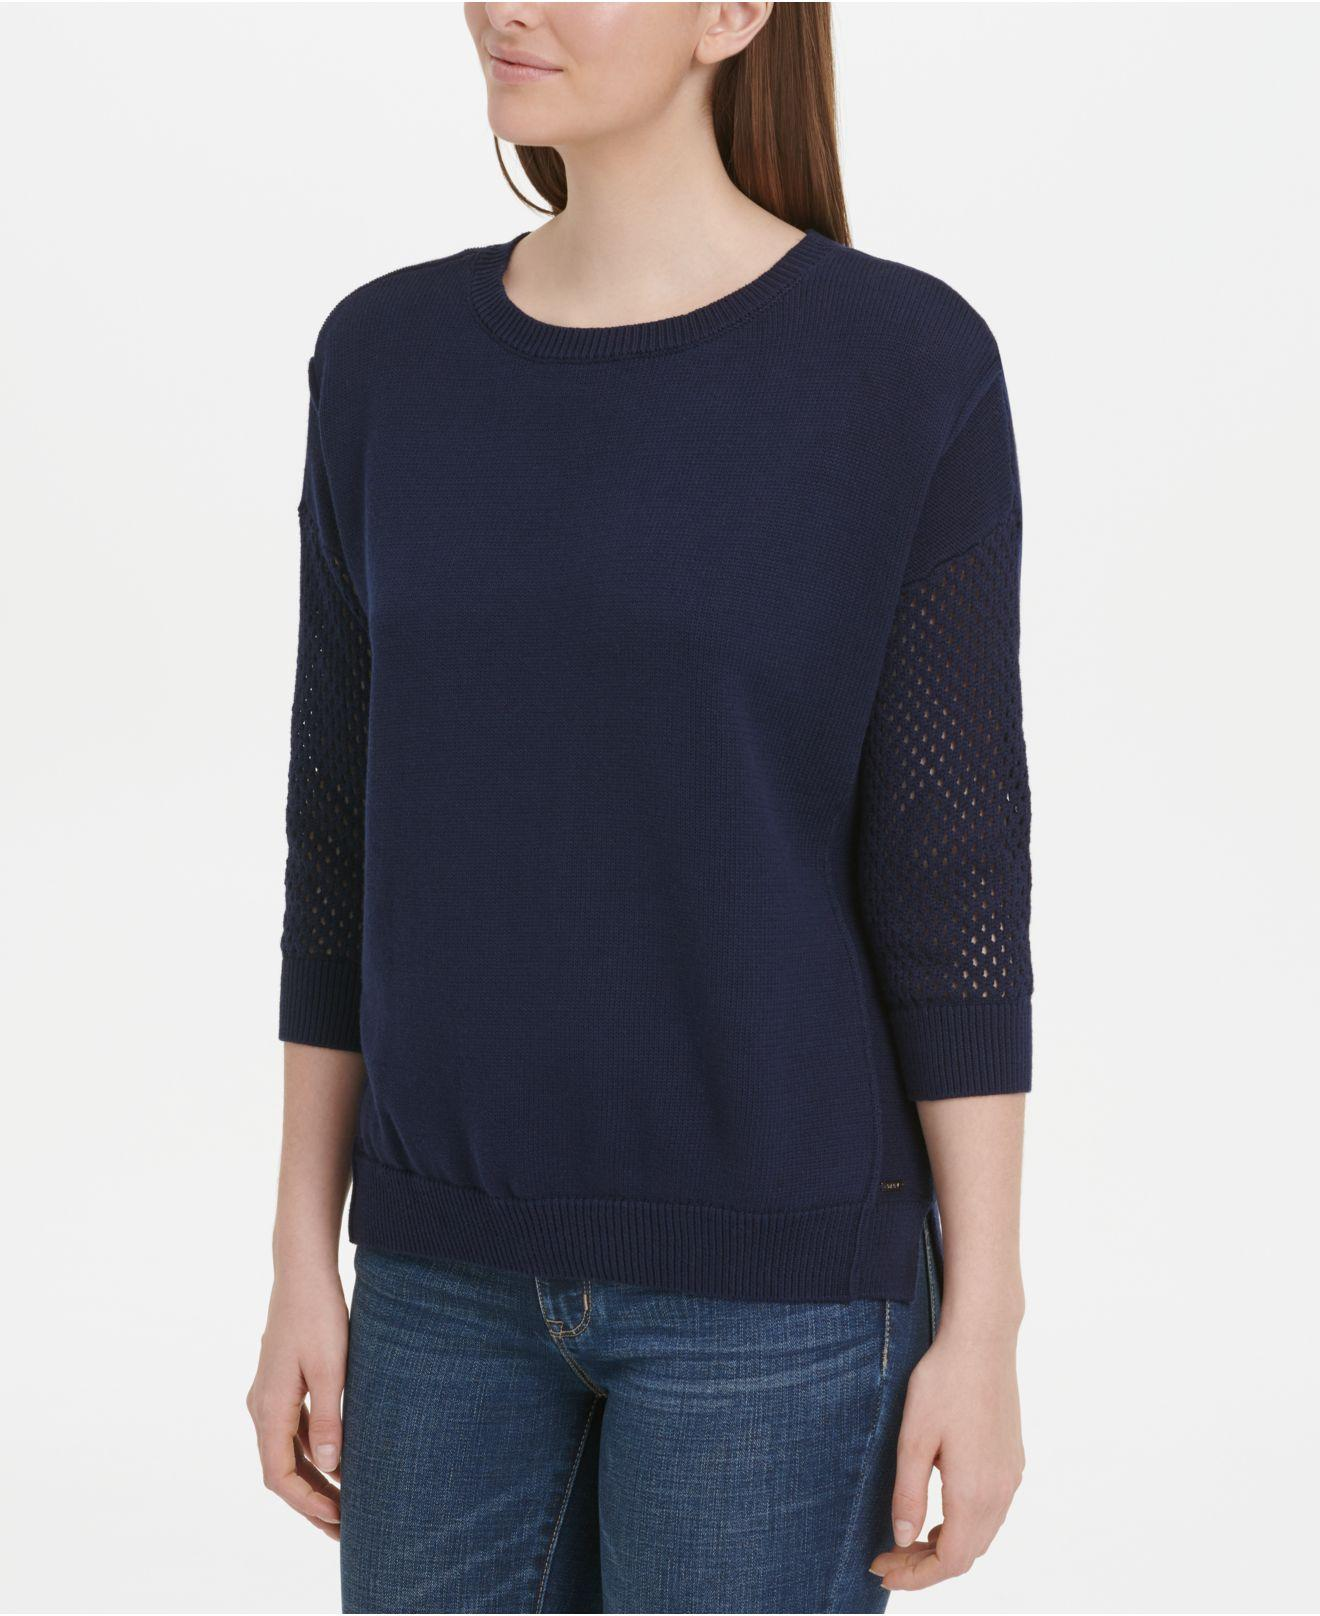 89b5dc80136 Lyst - DKNY Cotton Mesh-sleeve Sweater in Blue